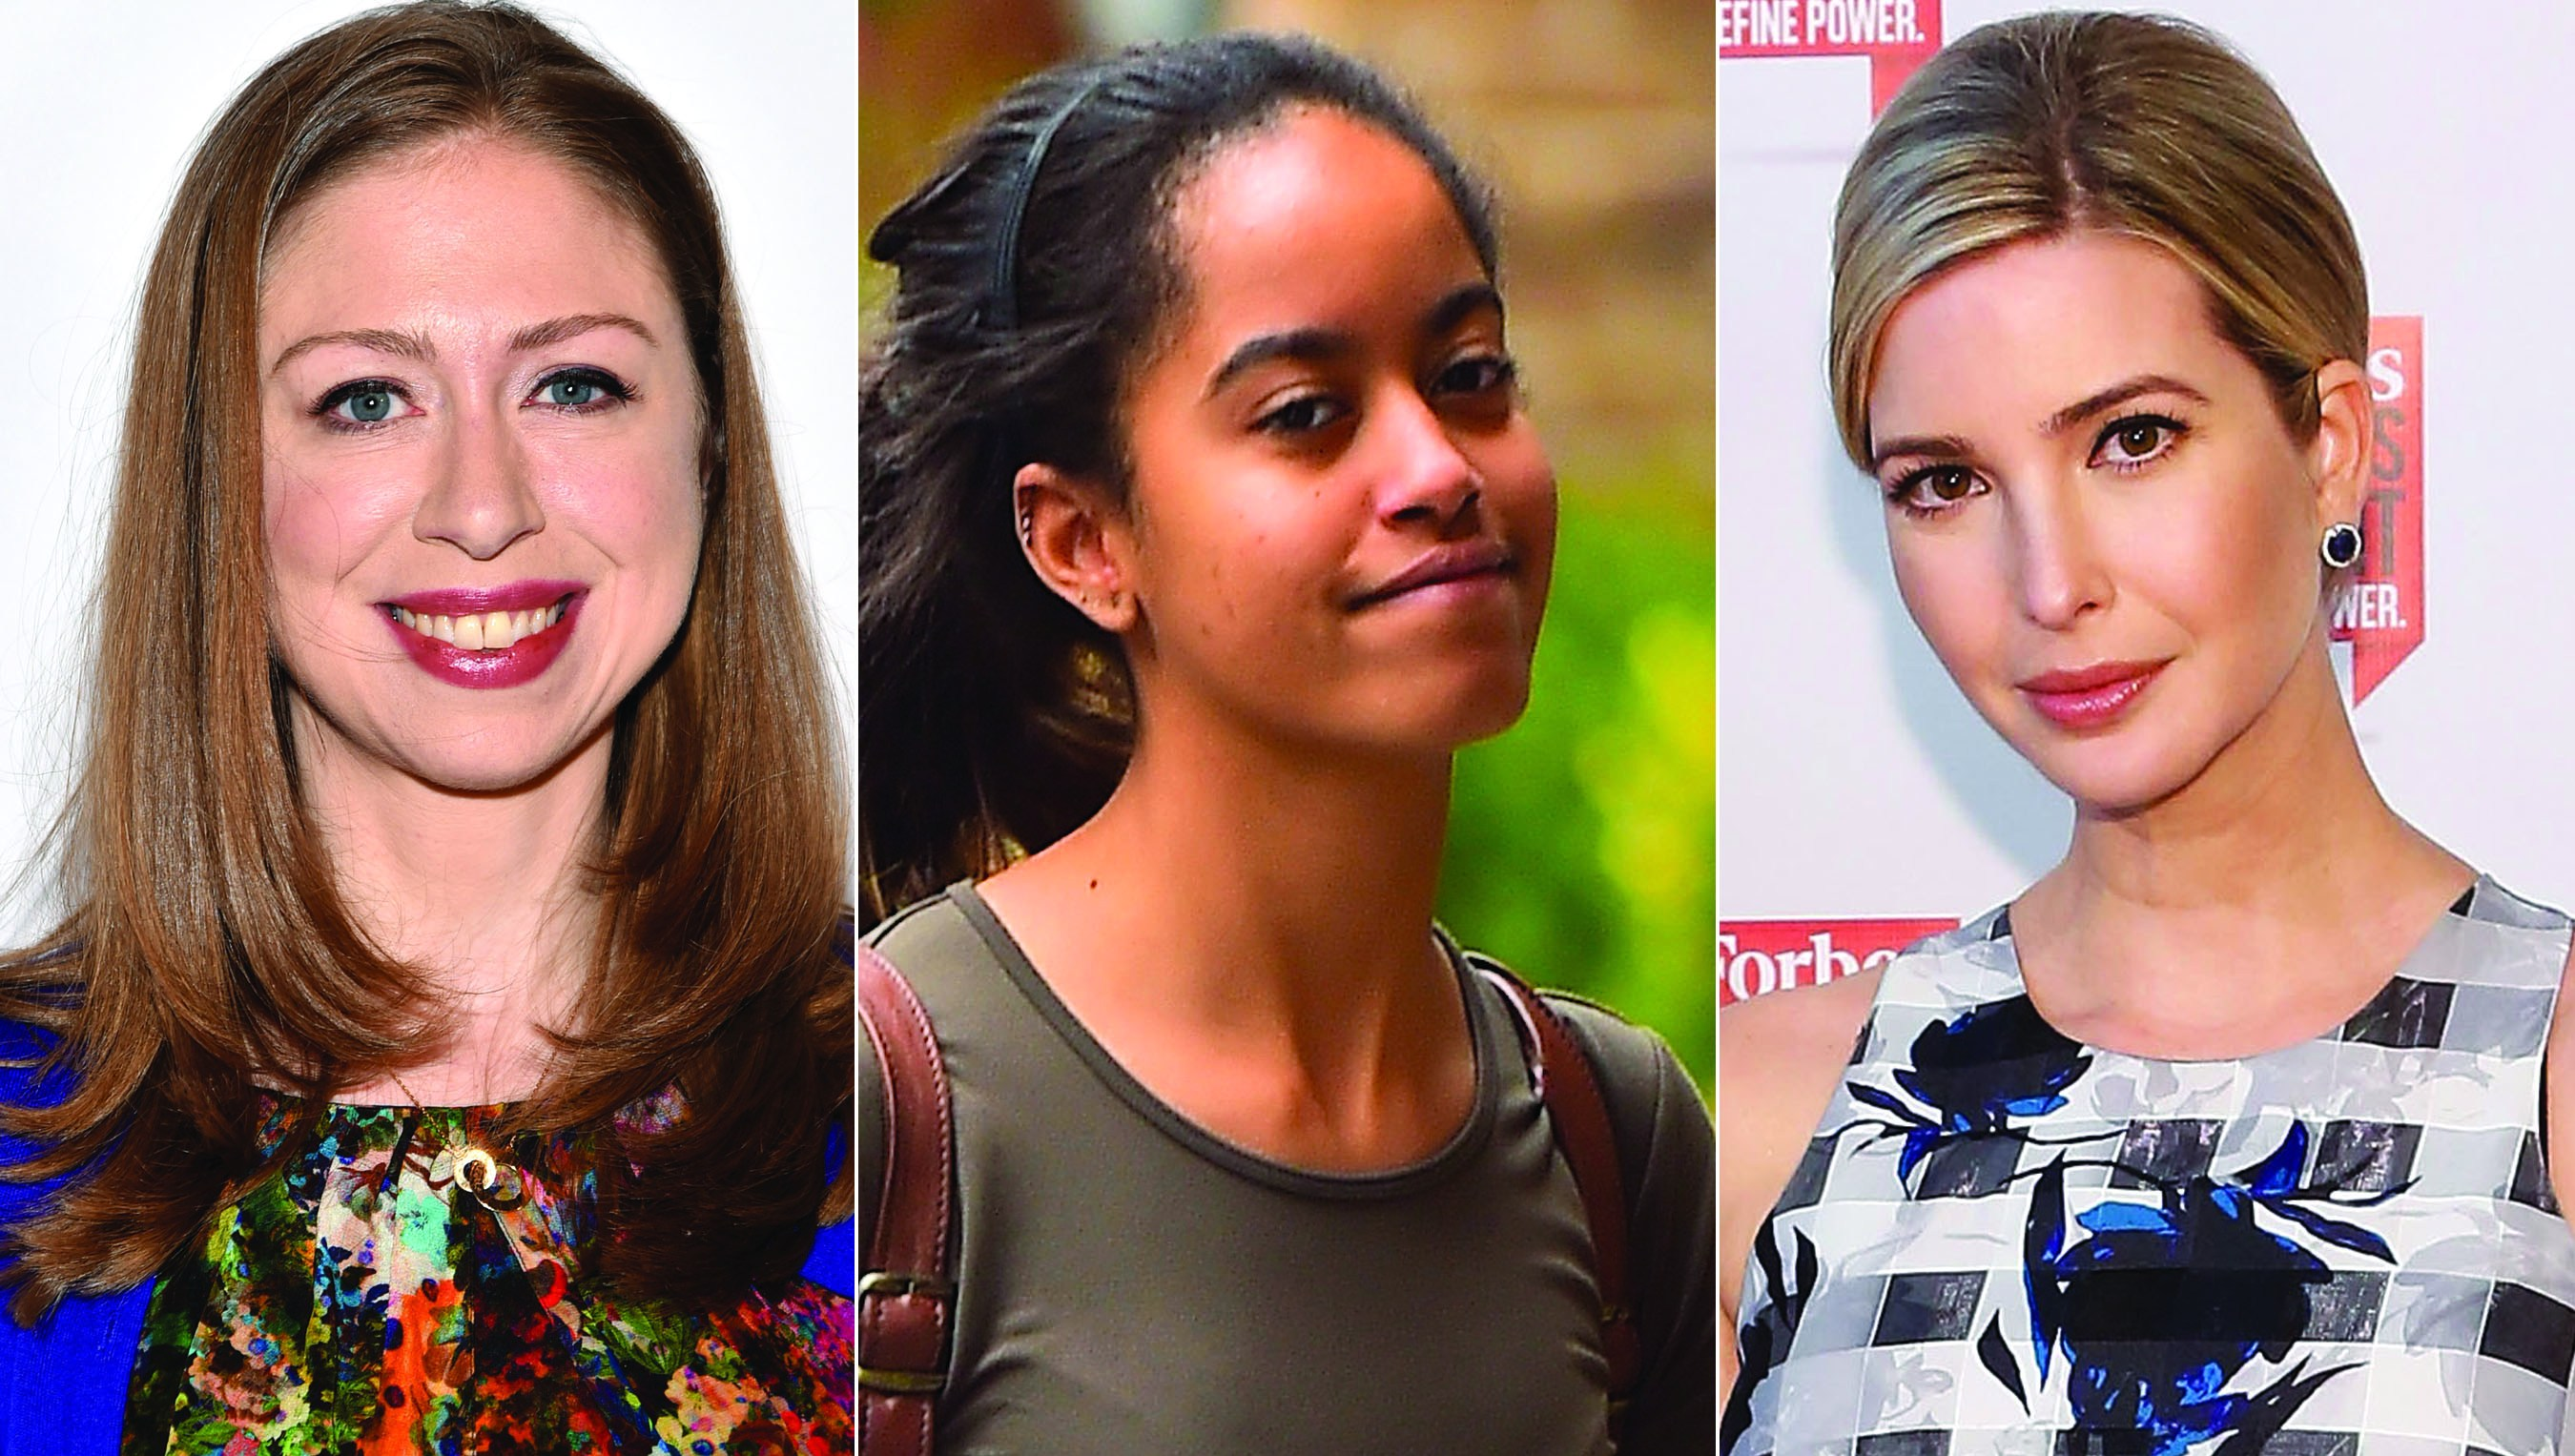 Chelsea Clinton, Malia Obama and Ivanka Trump